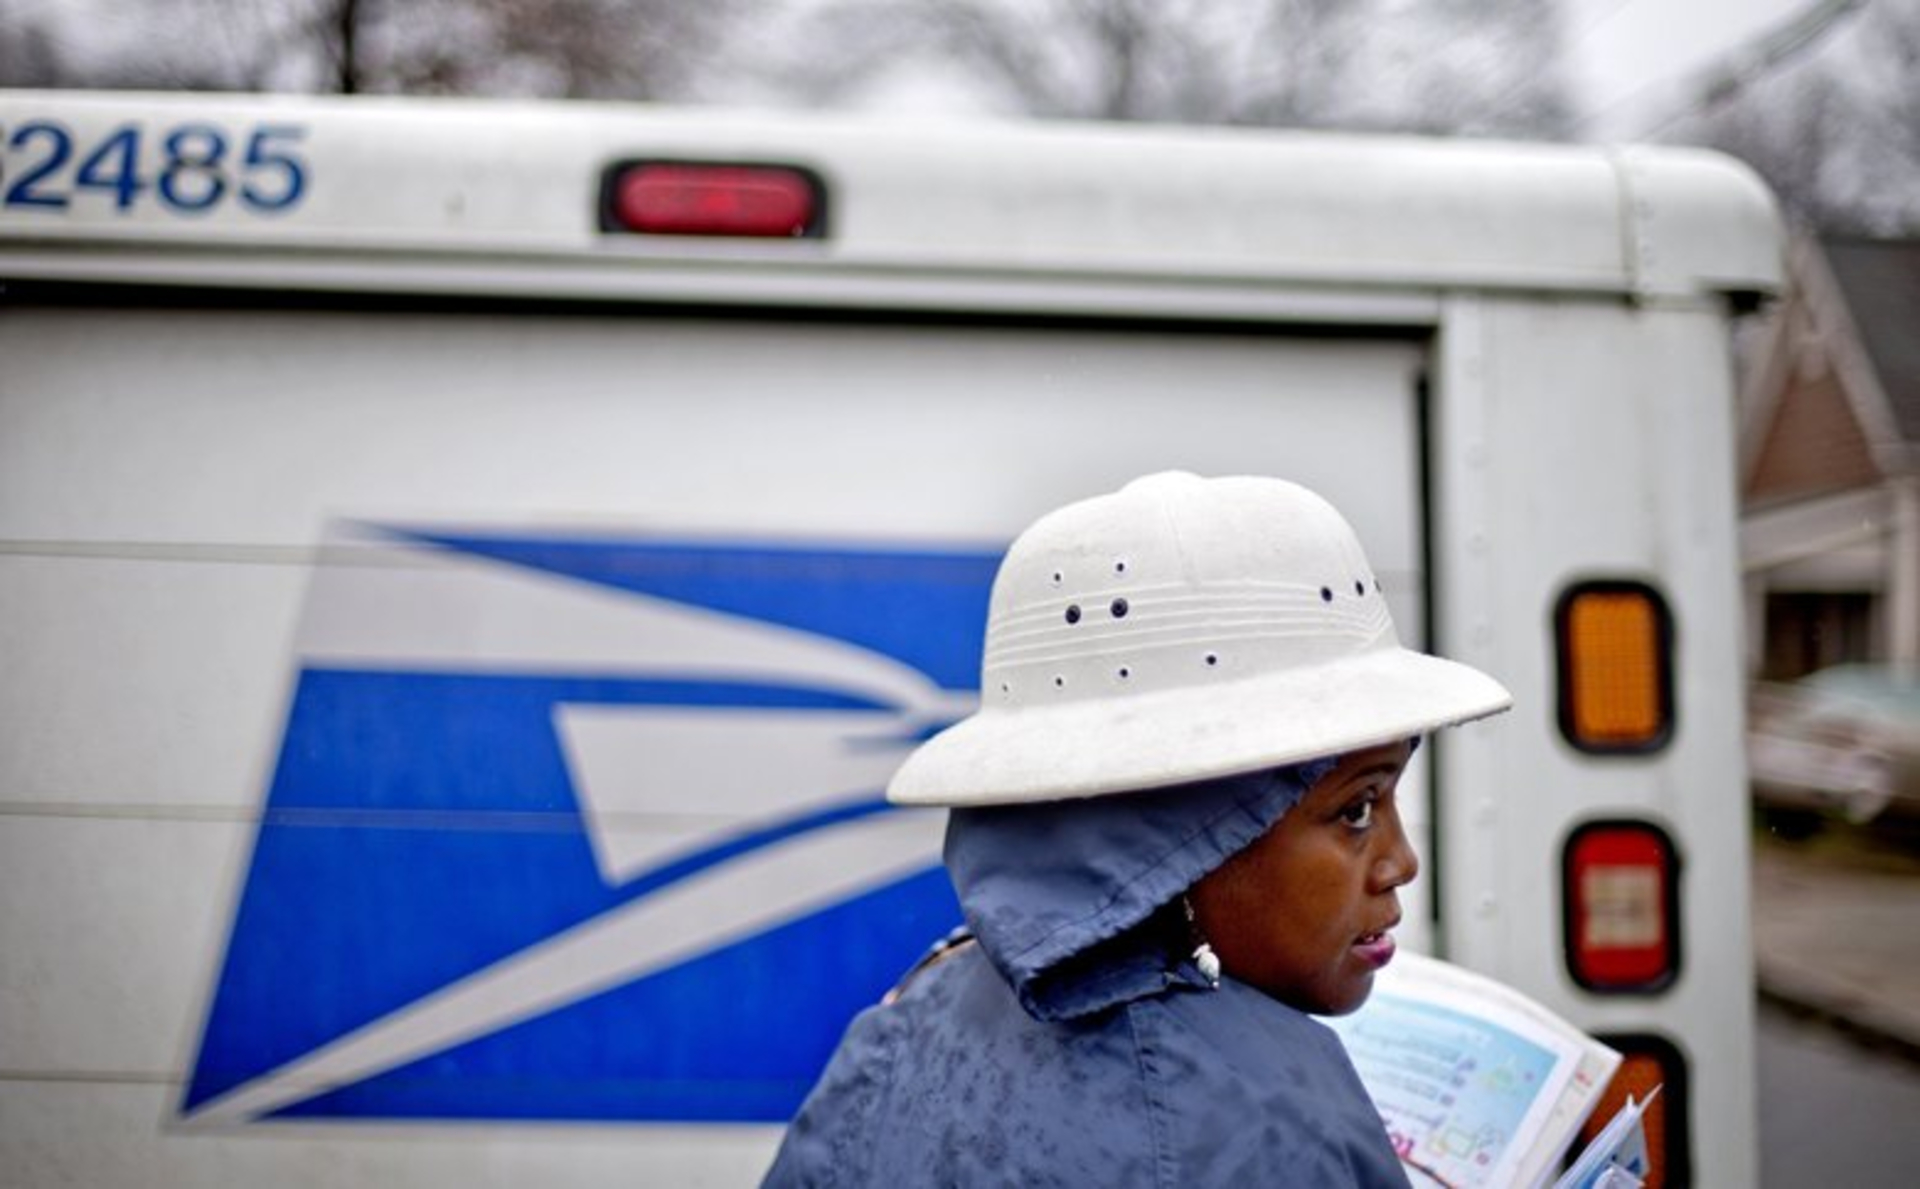 What You Should Know About the US Postal Service image